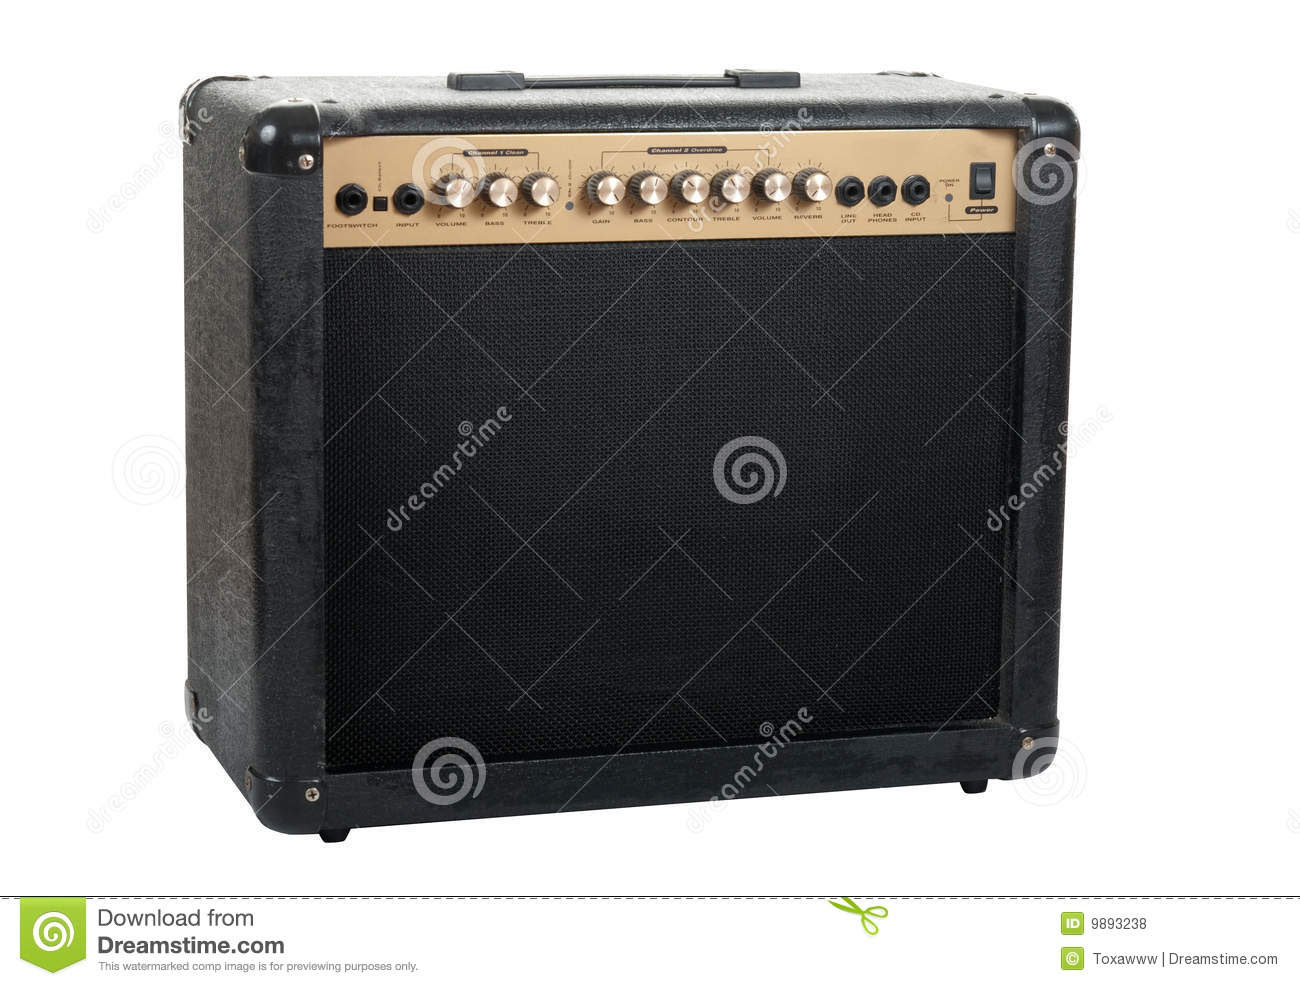 Handheld guitar amplifier isolated over white background in studio